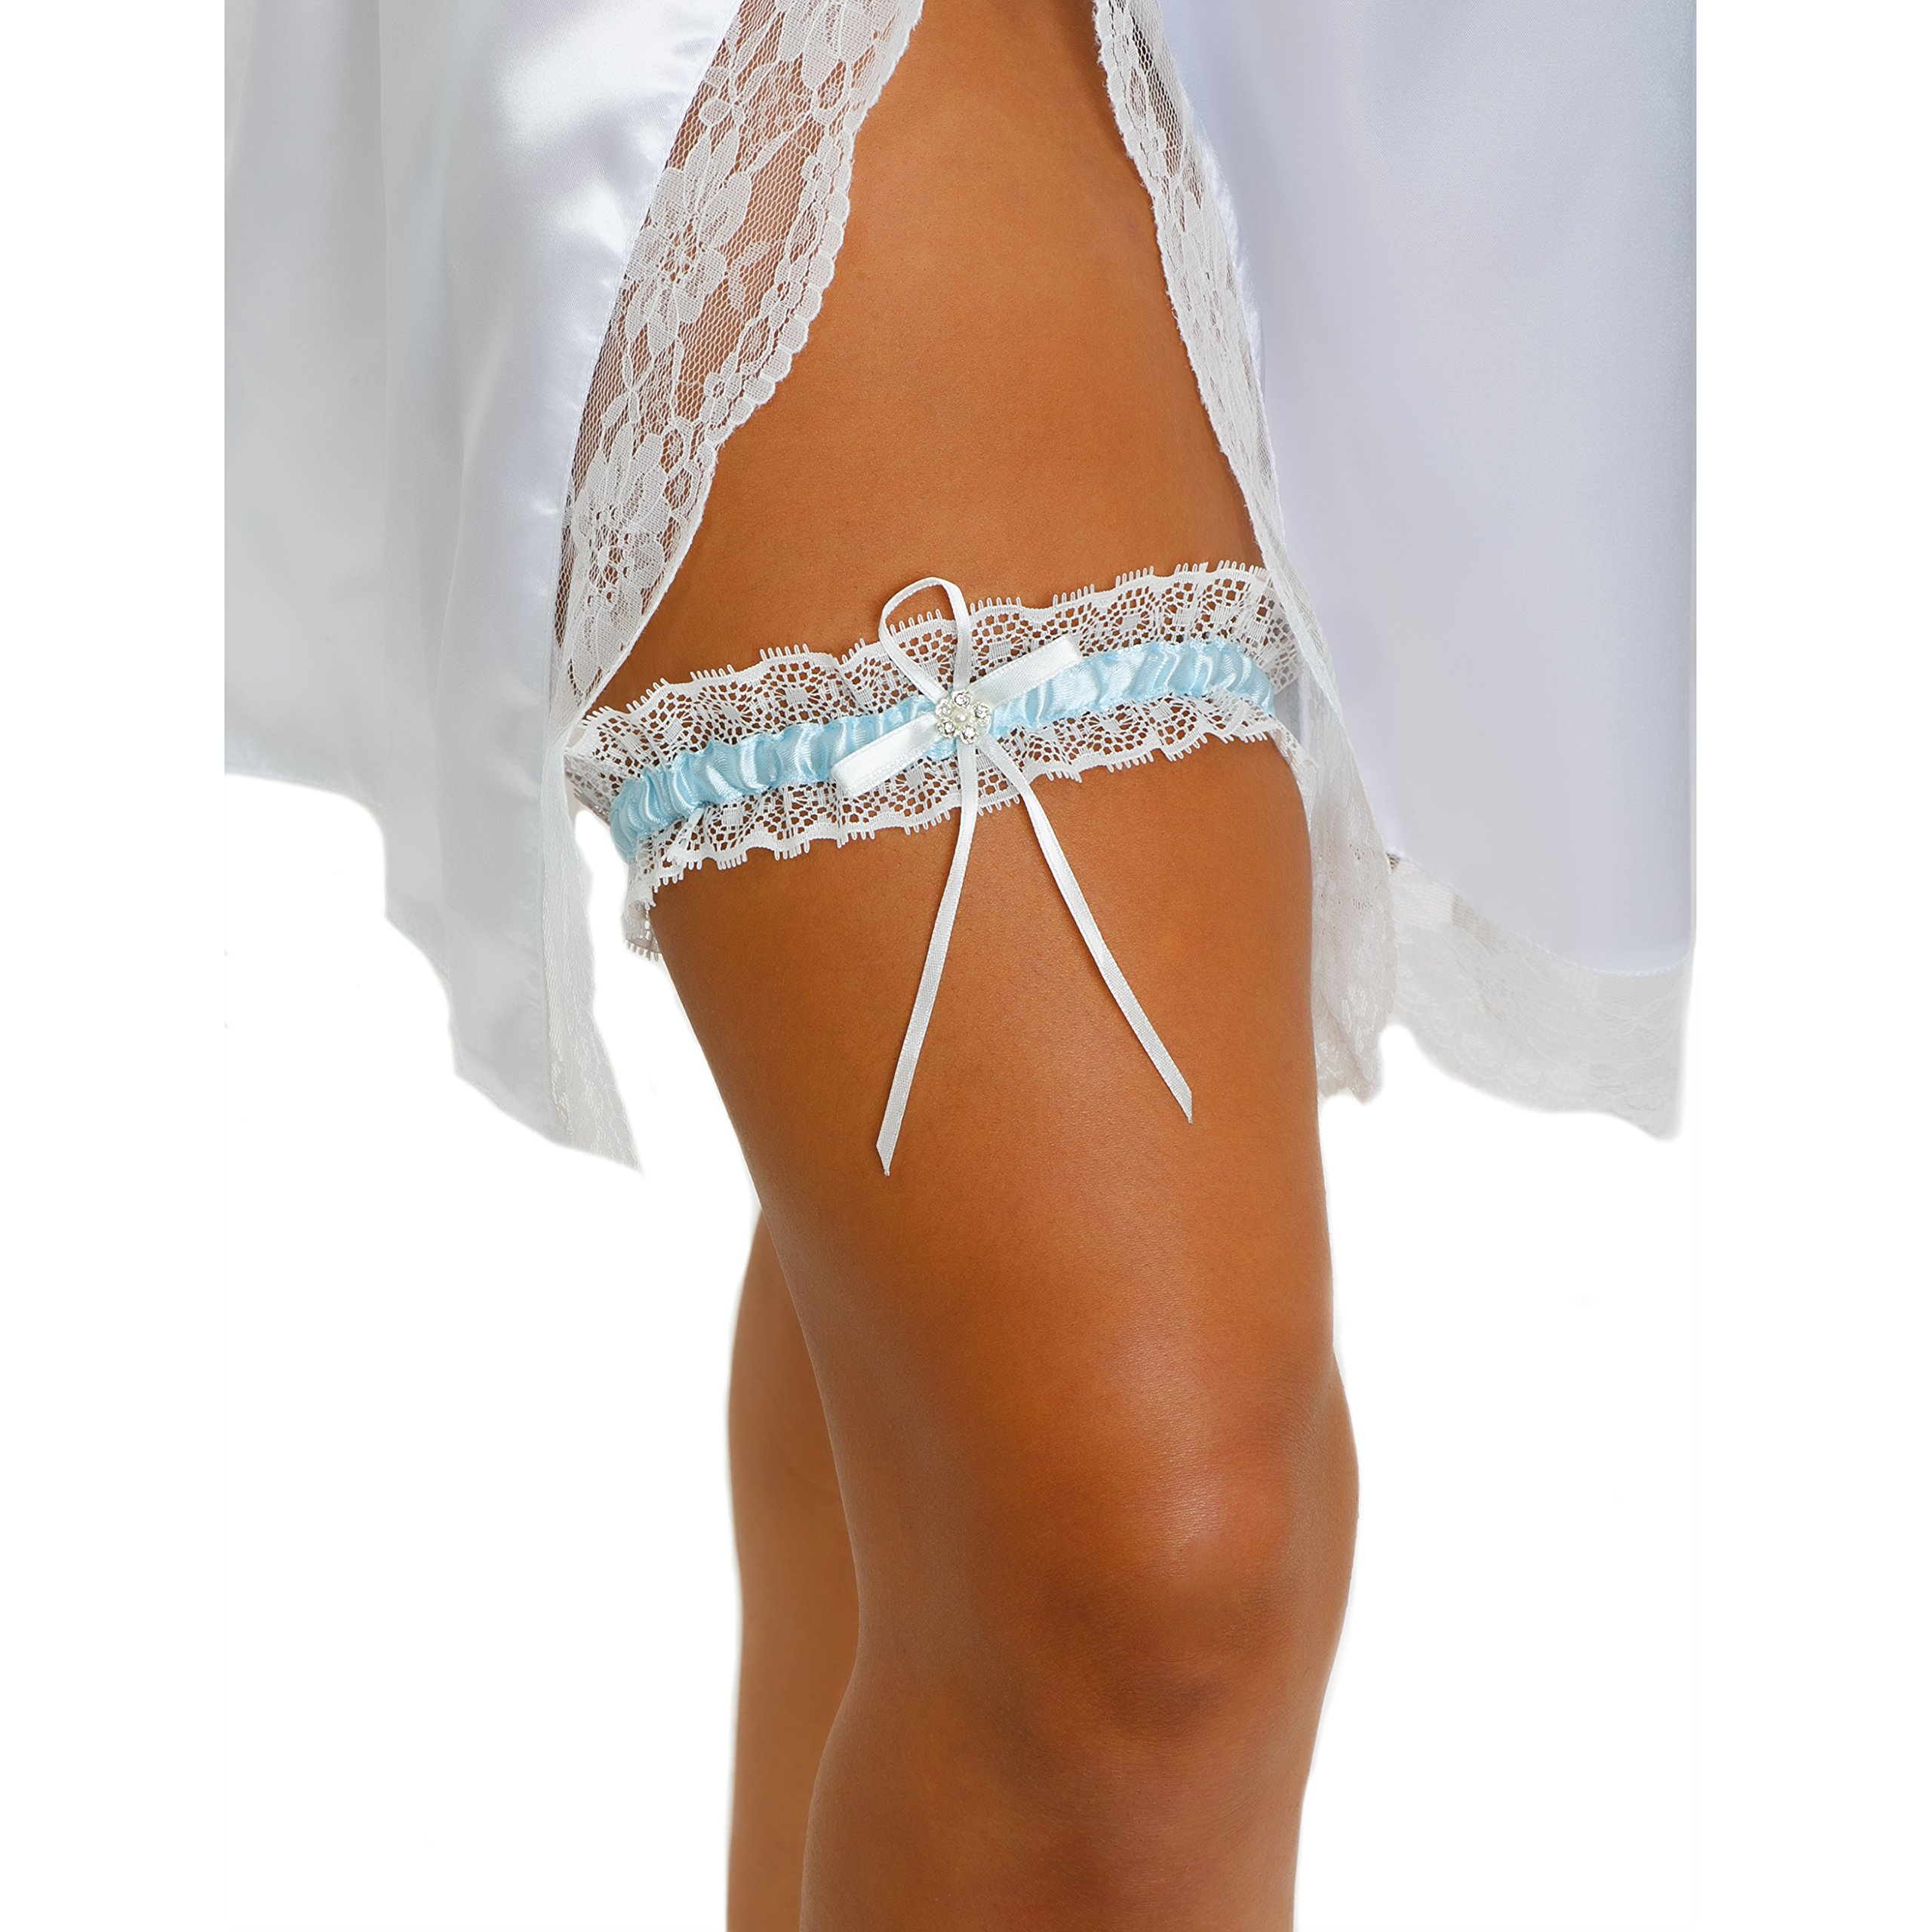 LR Bridal Blue Lace Wedding Bridal Garter Rhinestone Satin Bow Brides